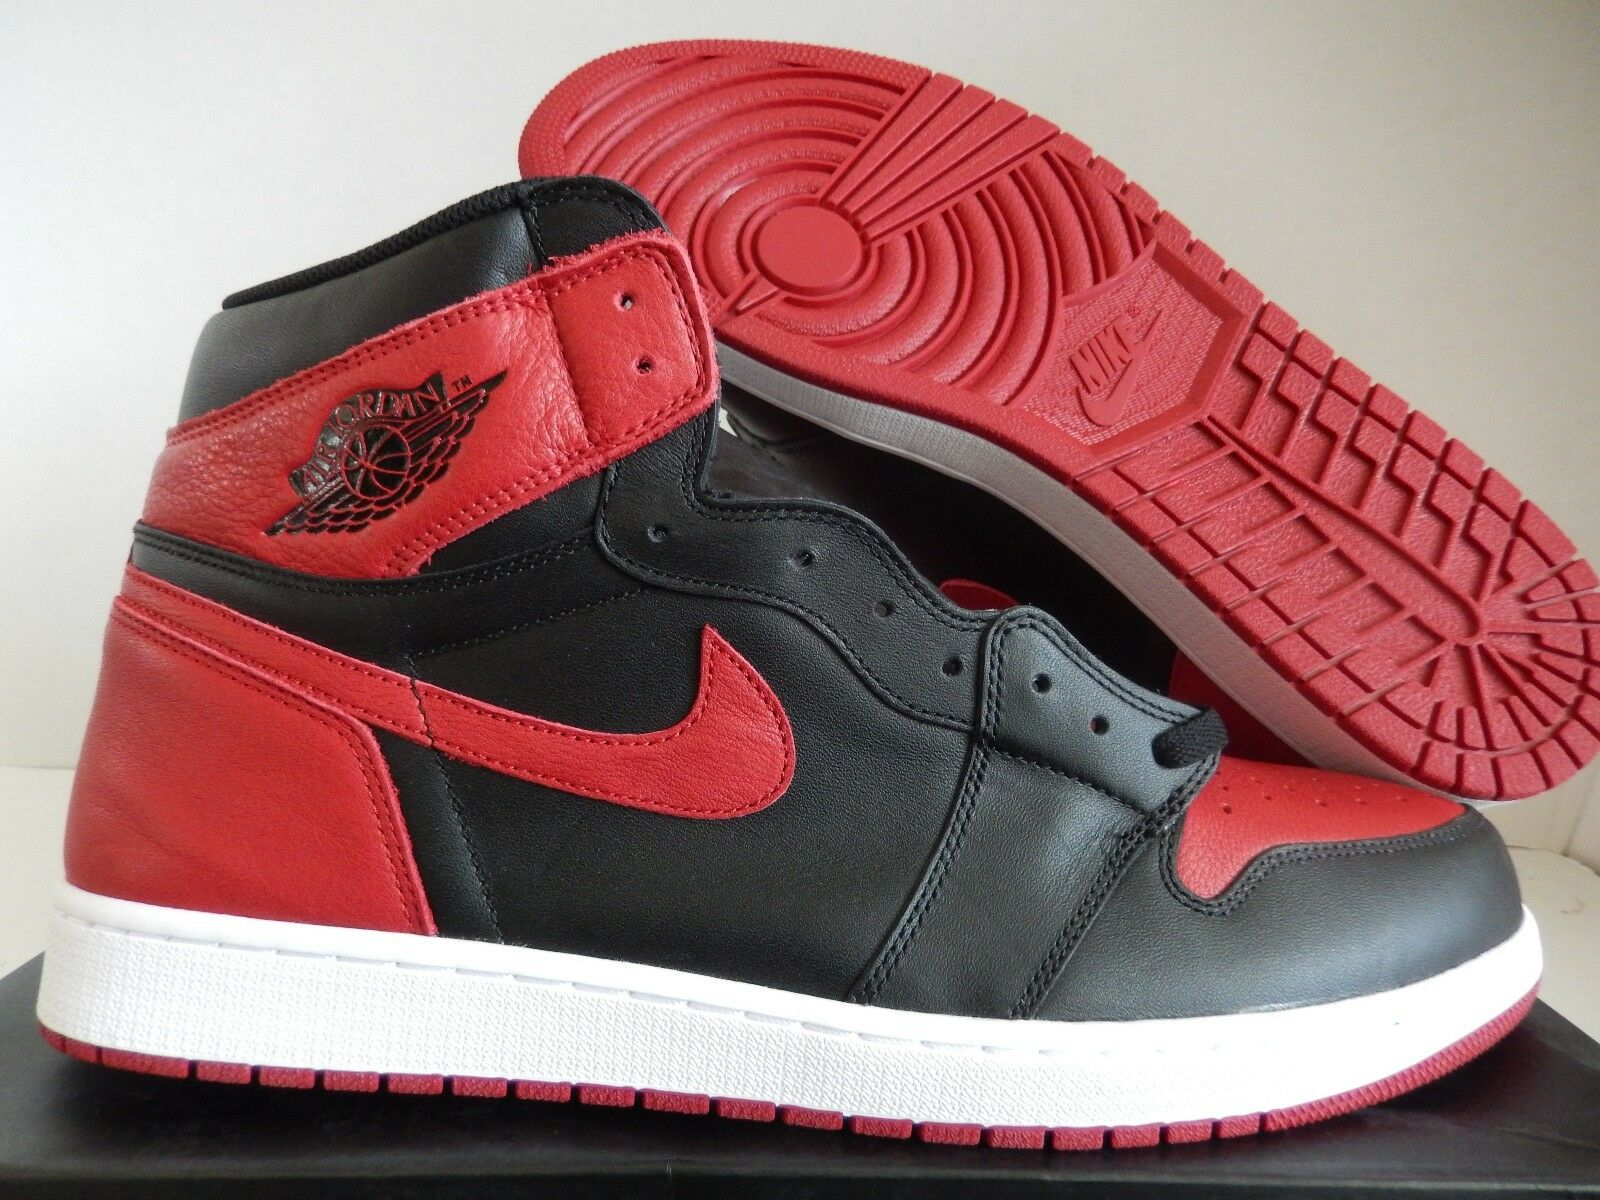 NIKE AIR JORDAN 1 RETRO HIGH OG BRED BANNED BLACK-RED-WHT SZ 17 [555088-001]